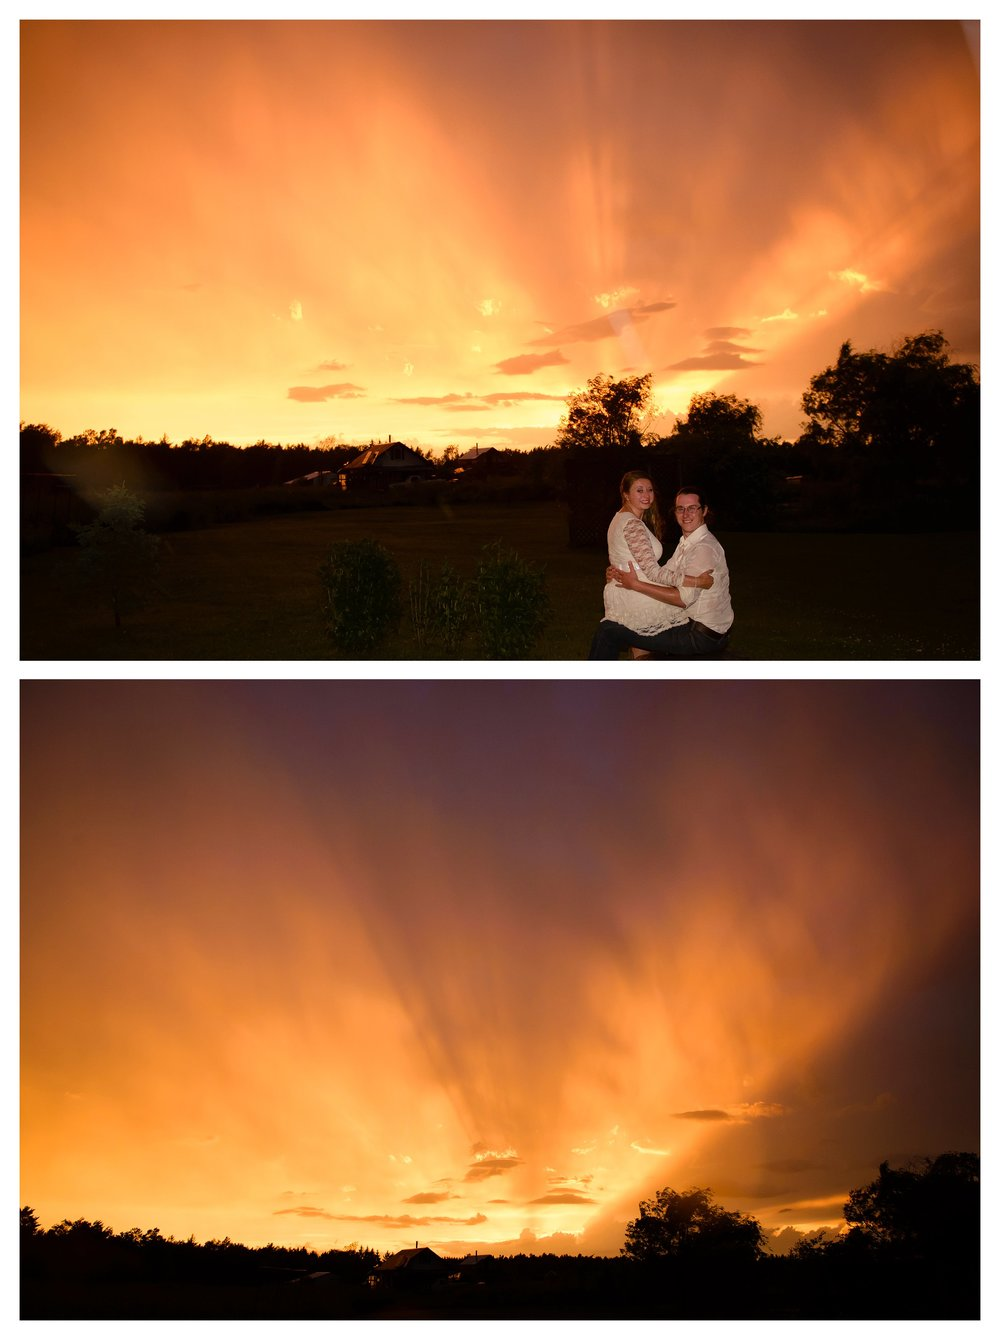 ps 139 photography jen jensen freehands farm wedding storm sunset-8950.jpg